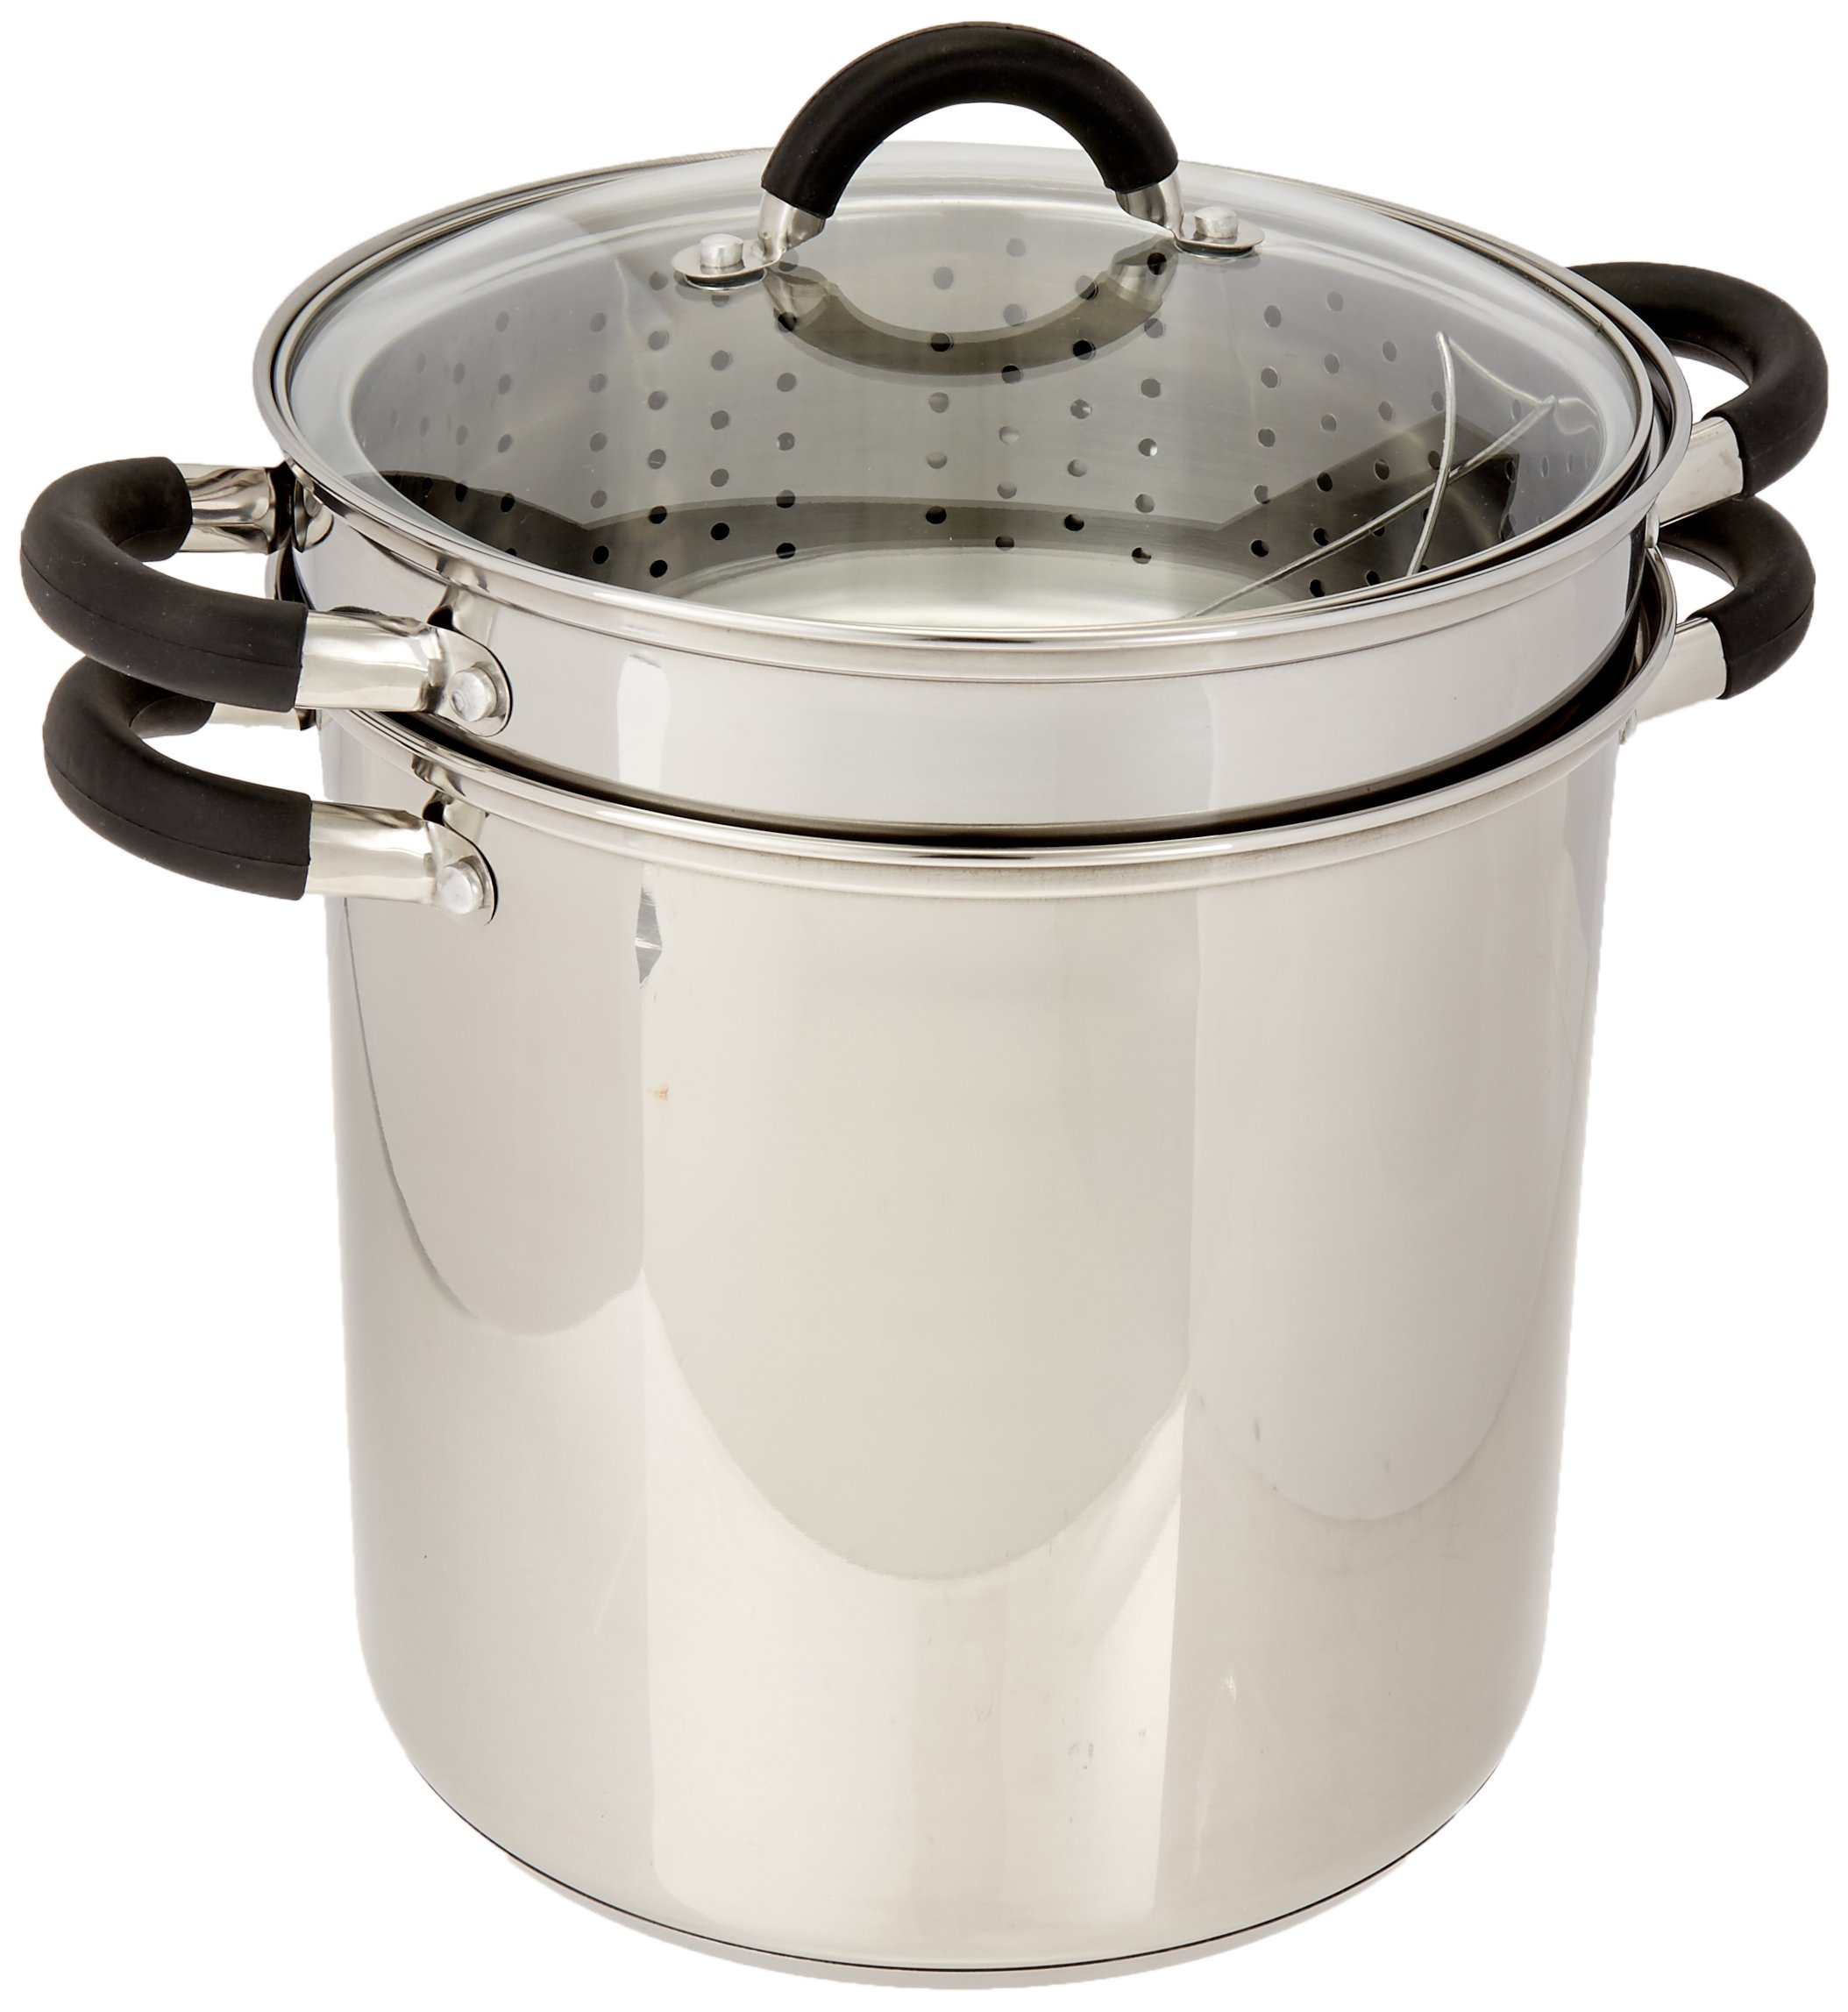 ExcelSteel 12 Qt Multifunction Stainless Steel Pasta Cooker with Encapsulated Base, Vented Glass Lid, and Riveted Silicone Covered Handles by ExcelSteel (Image #1)